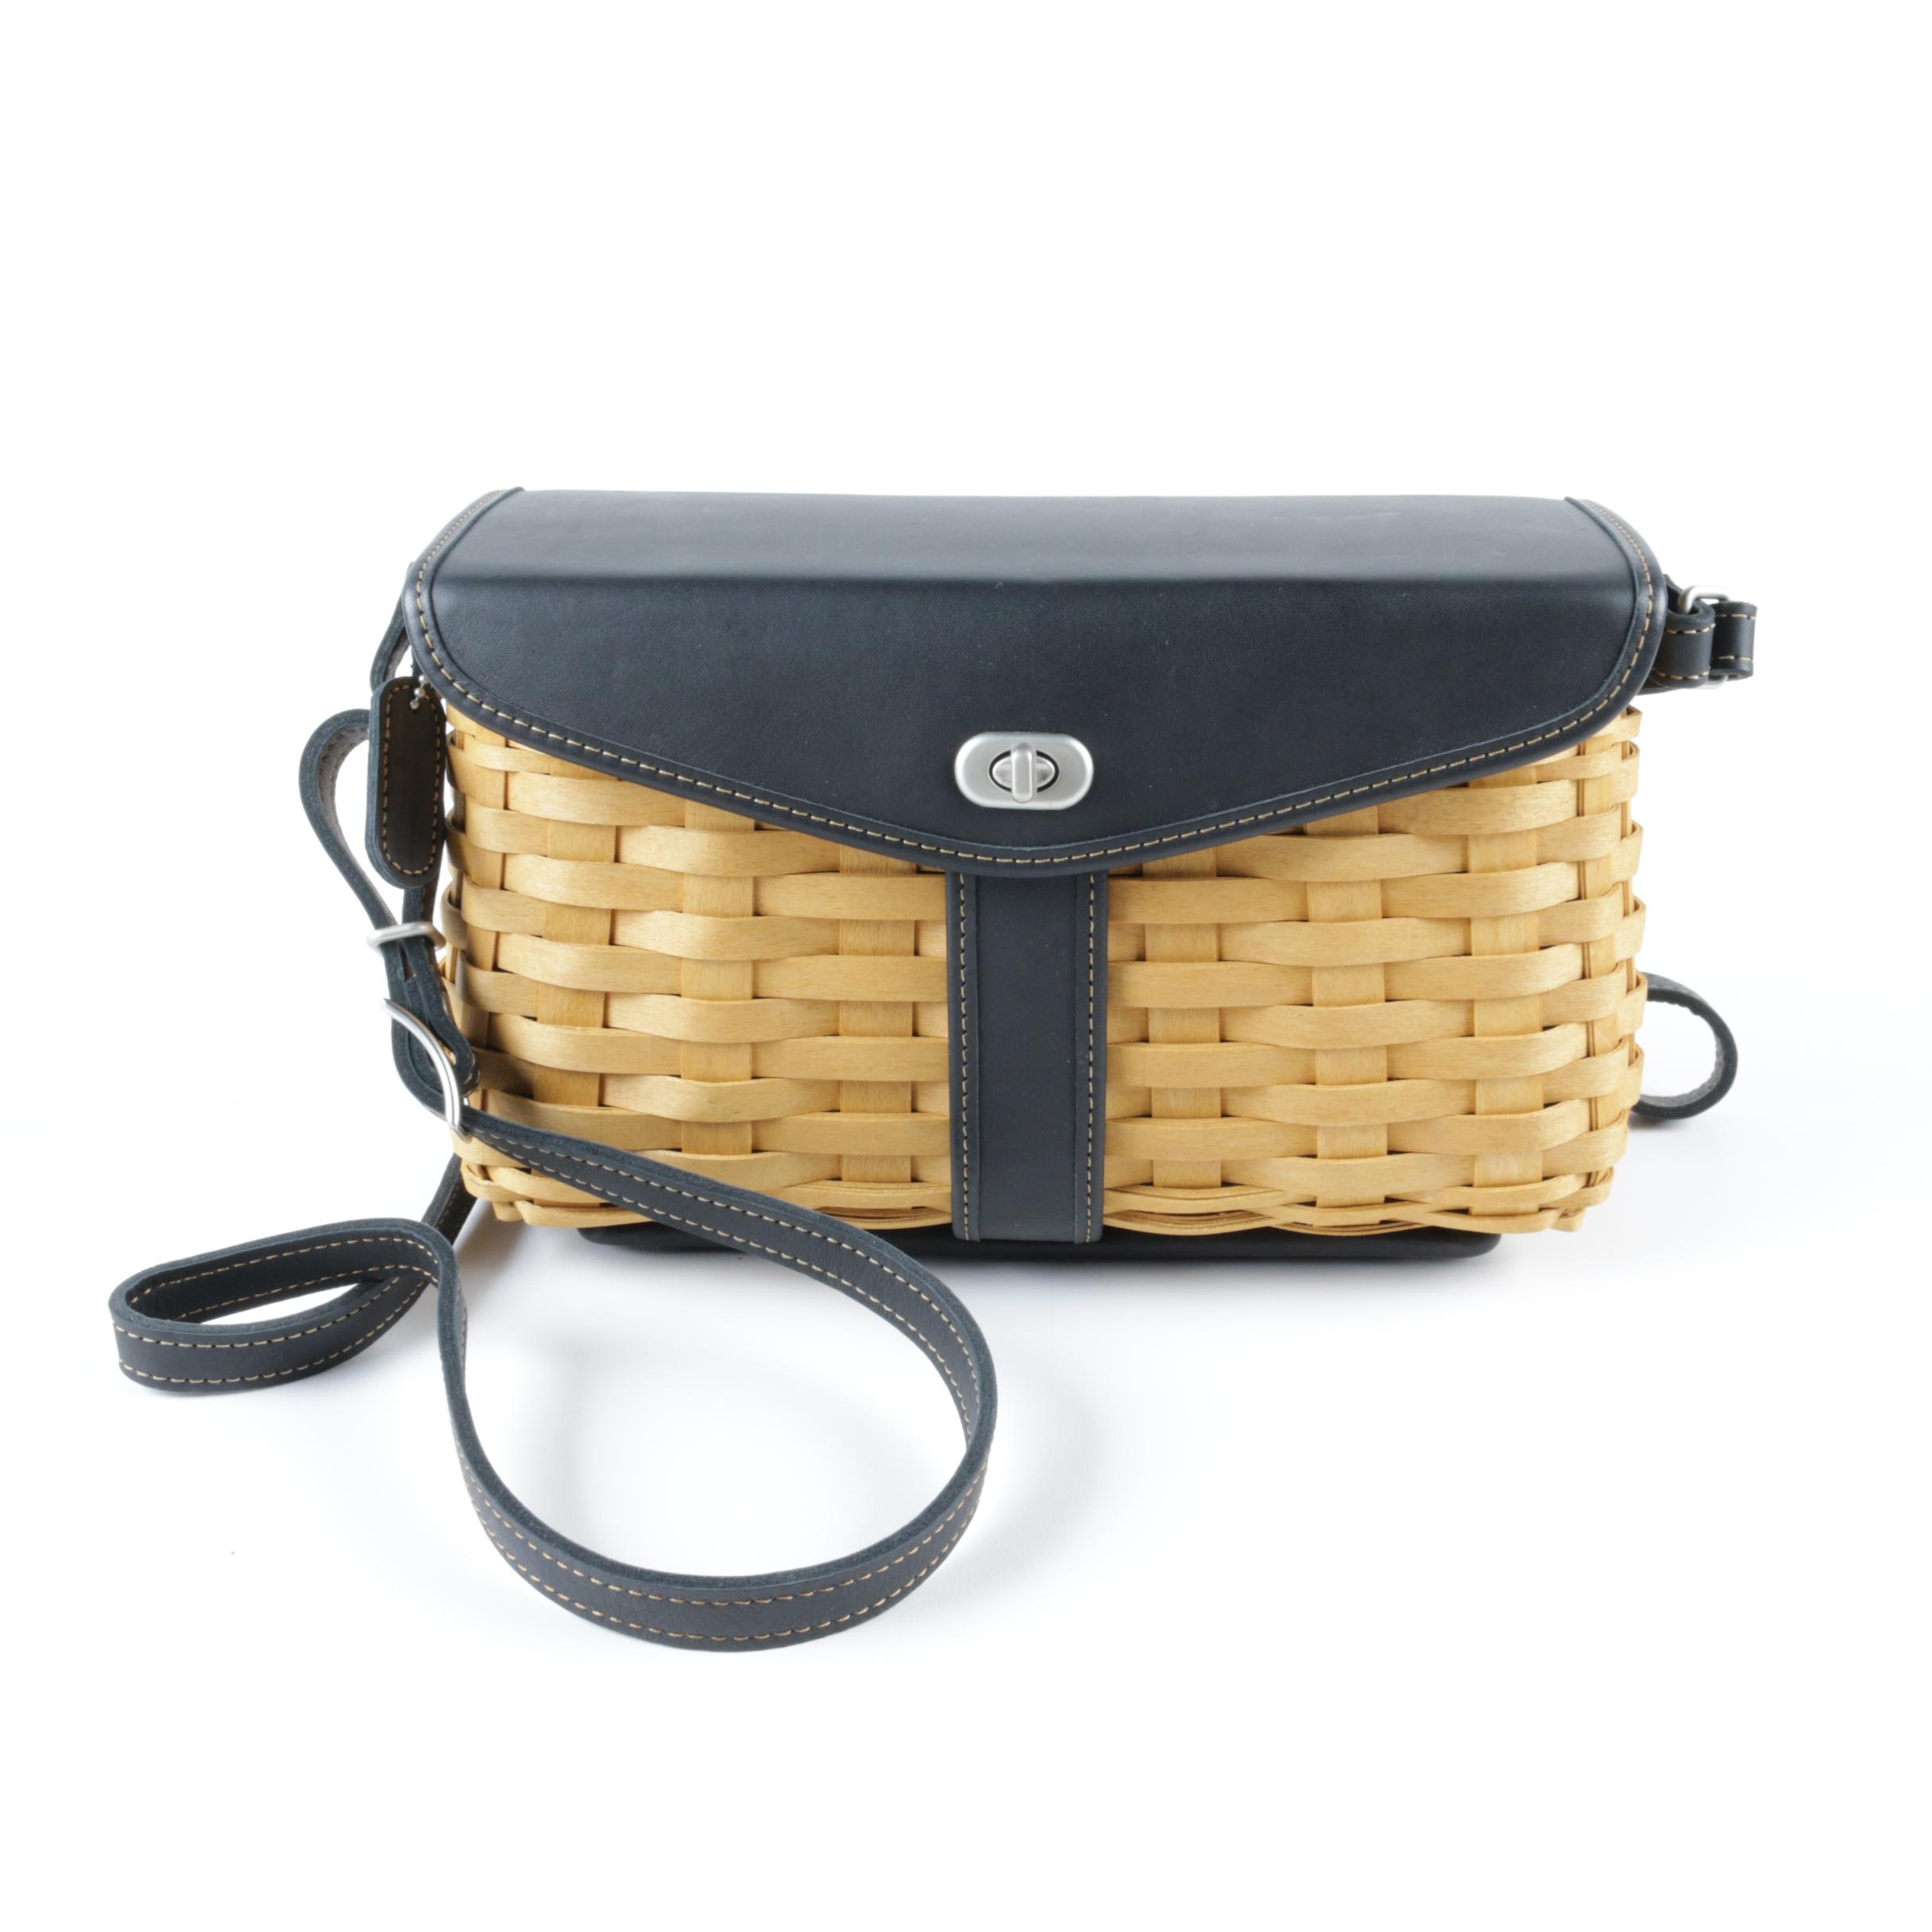 Longaberger Basket and Leather Crossbody